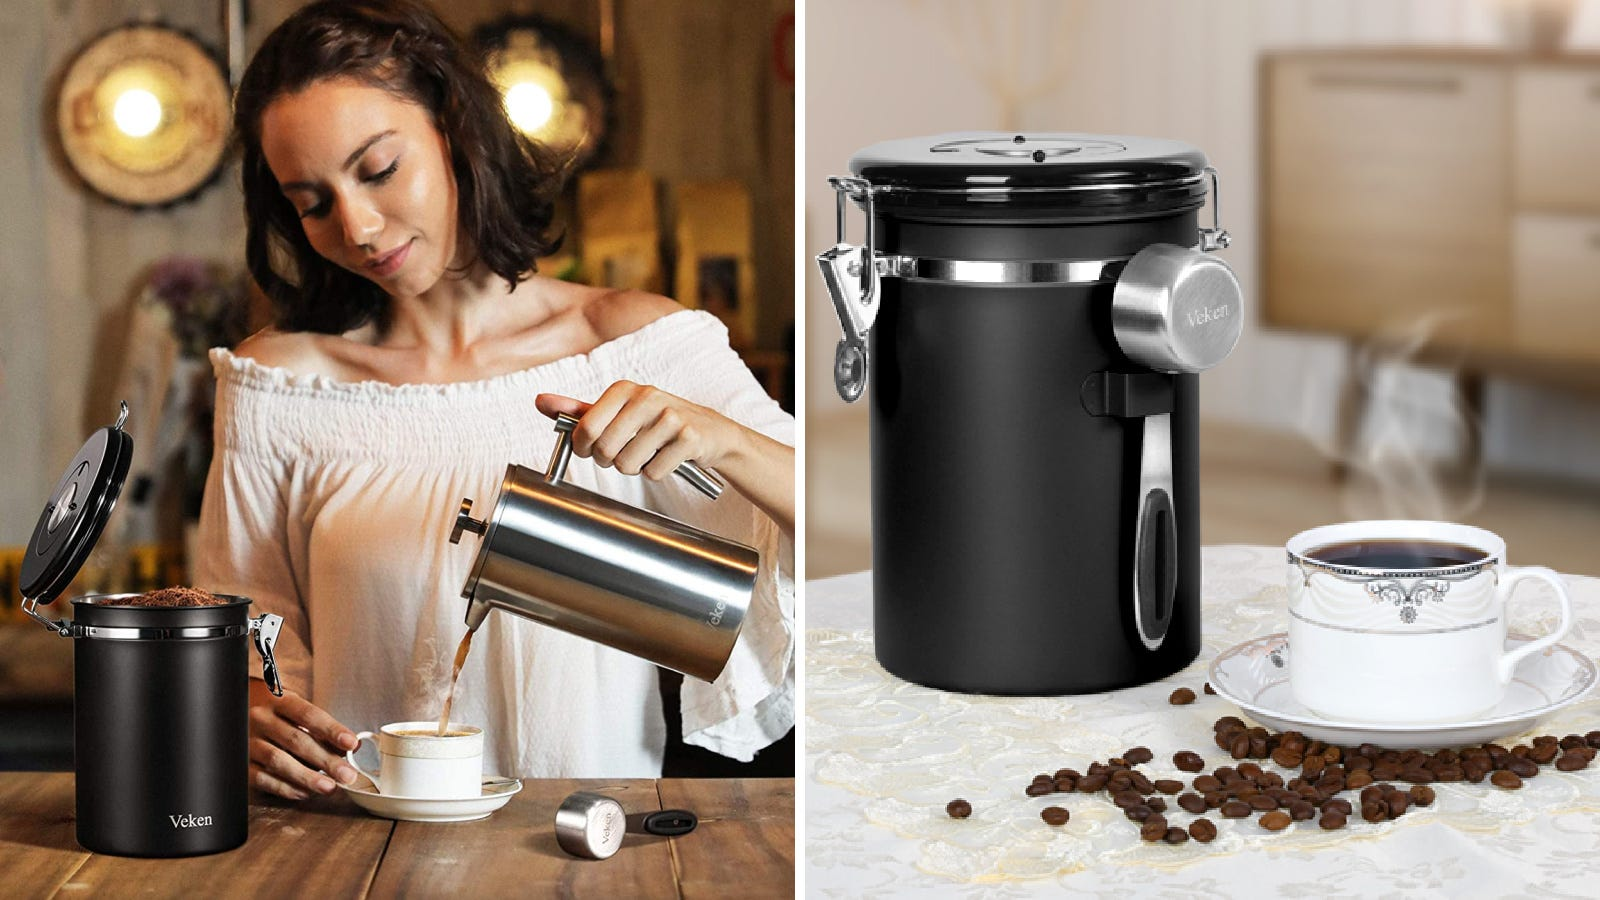 Two images displaying the Veken coffee vault canister. The left image displays a young woman filling a cup of with hot pressed coffee with the canister next to her and the right image displays the canister next to a hot cup of coffee.